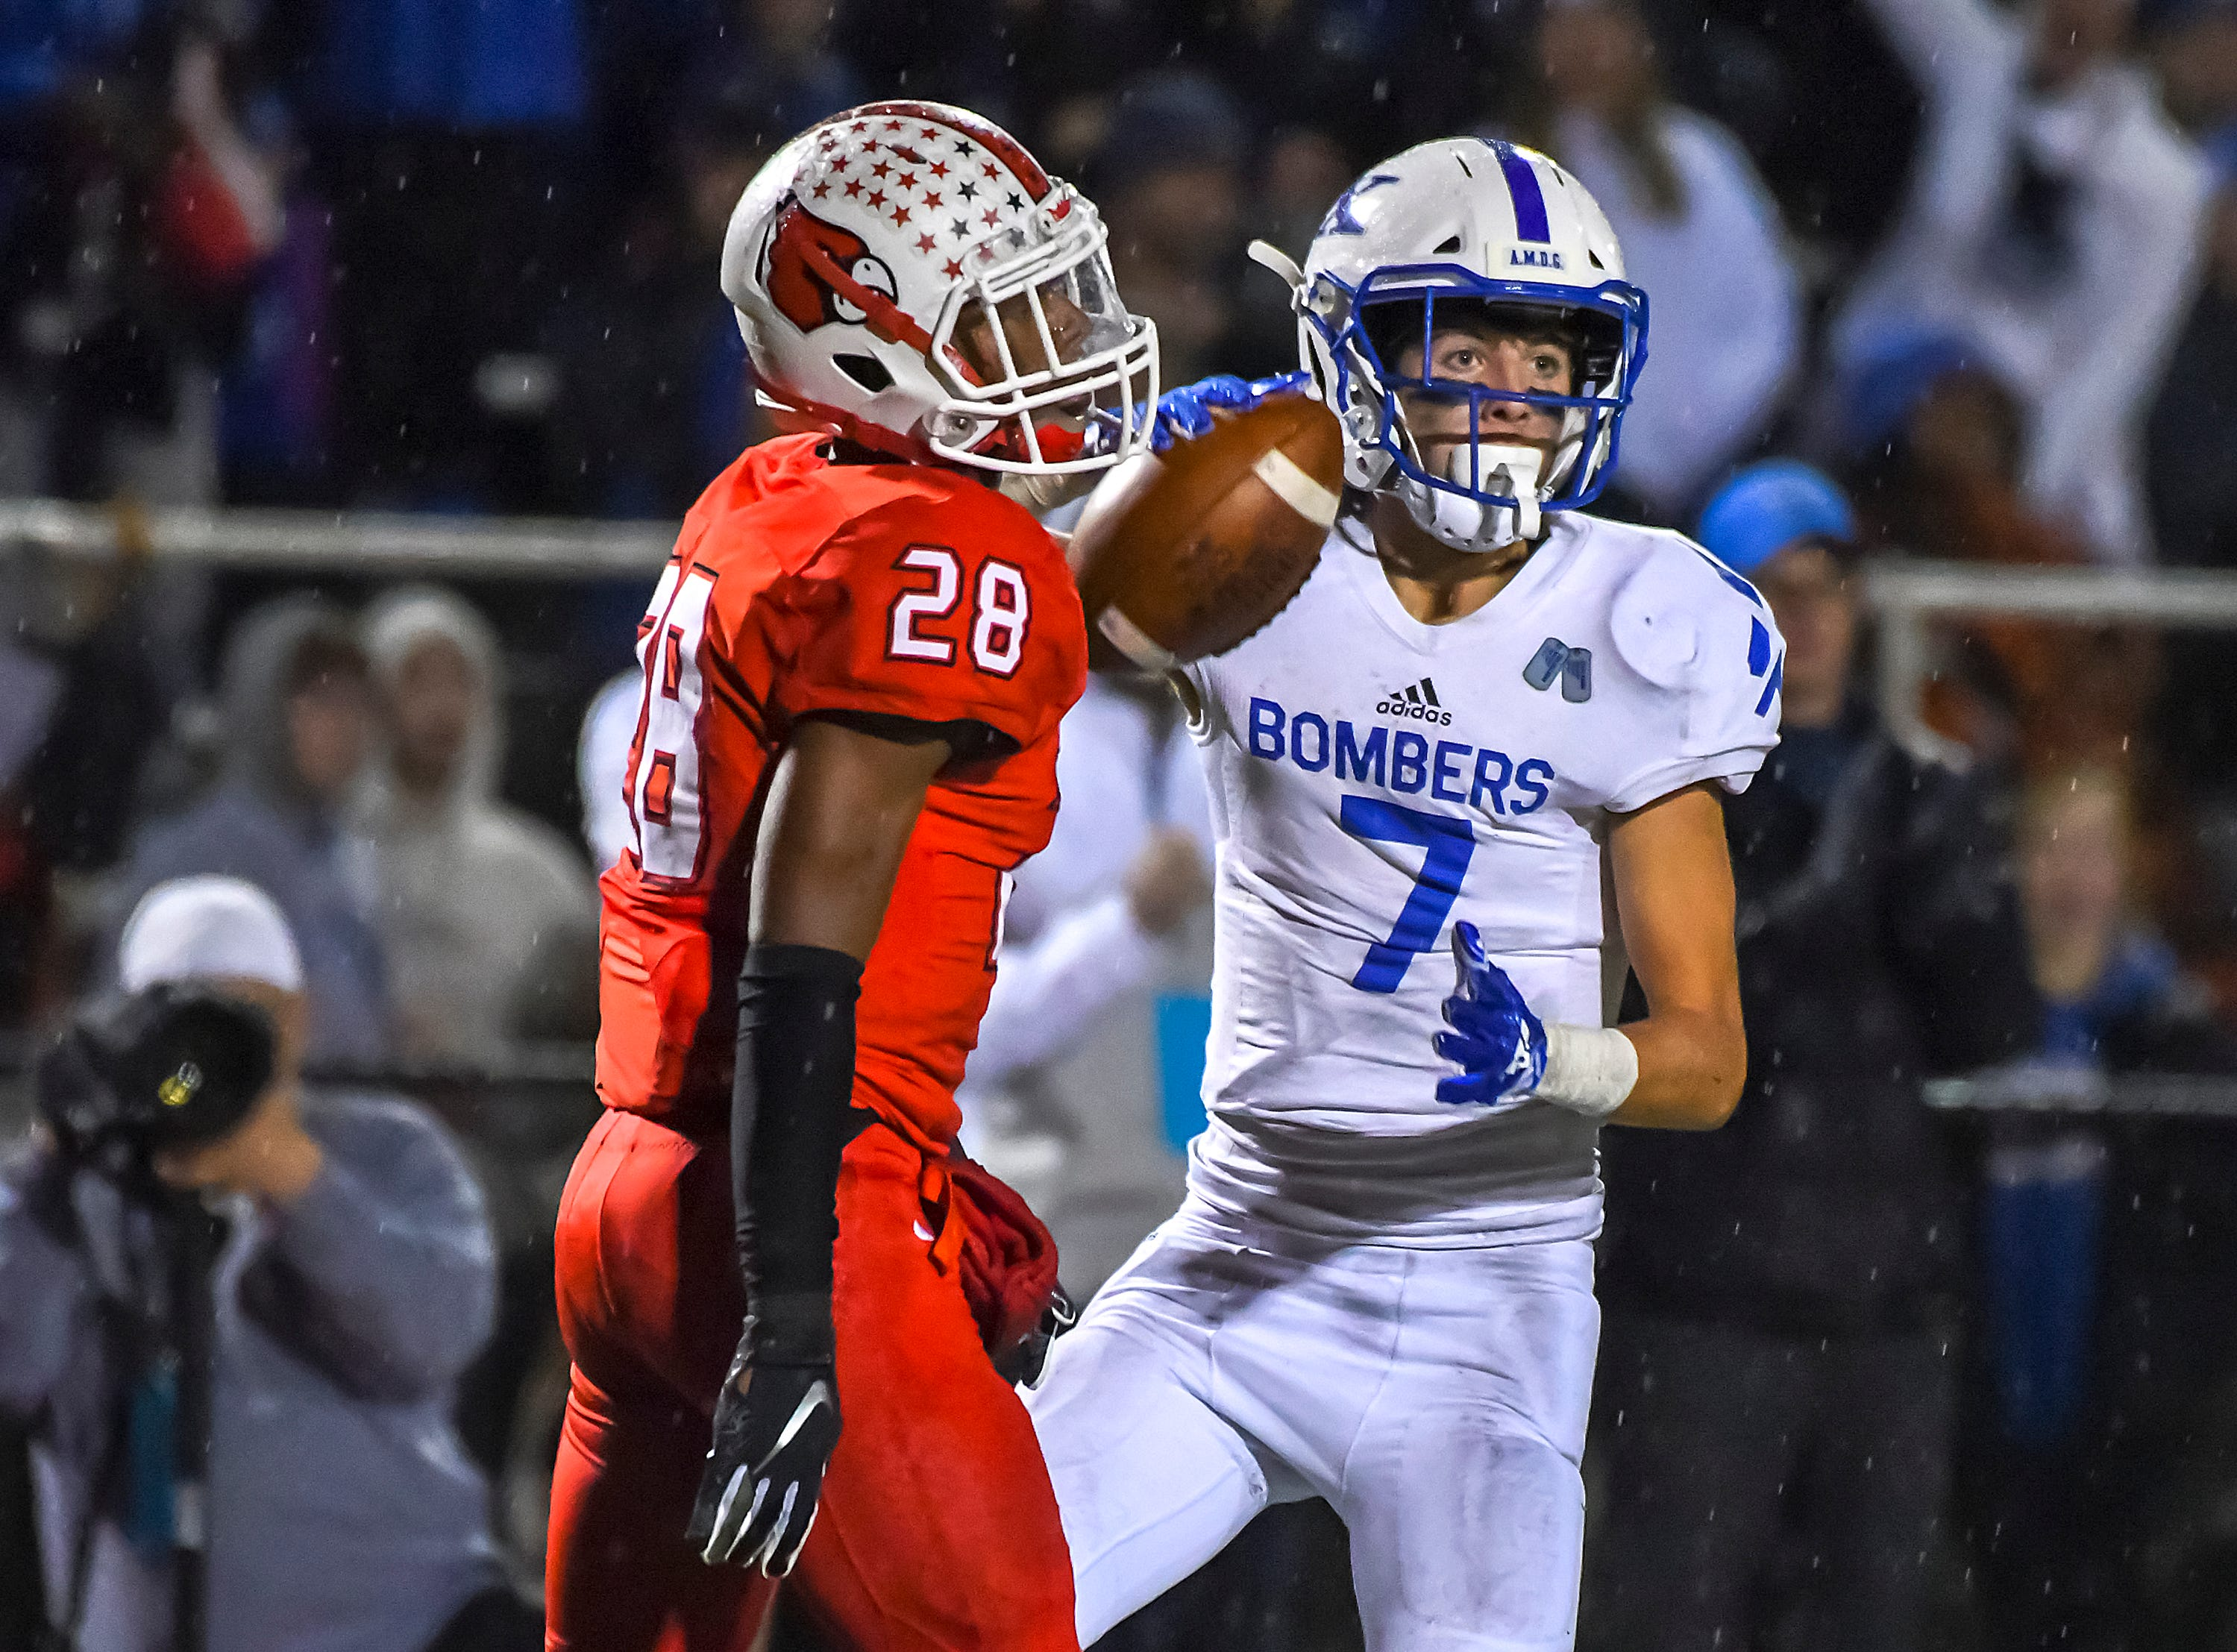 St. X defender Wiles Dolle (7) comes up with a interception against Colerain in the OHSAA DI Region 4 Playoffs at Colerain High School,  Friday Nov. 2, 2018